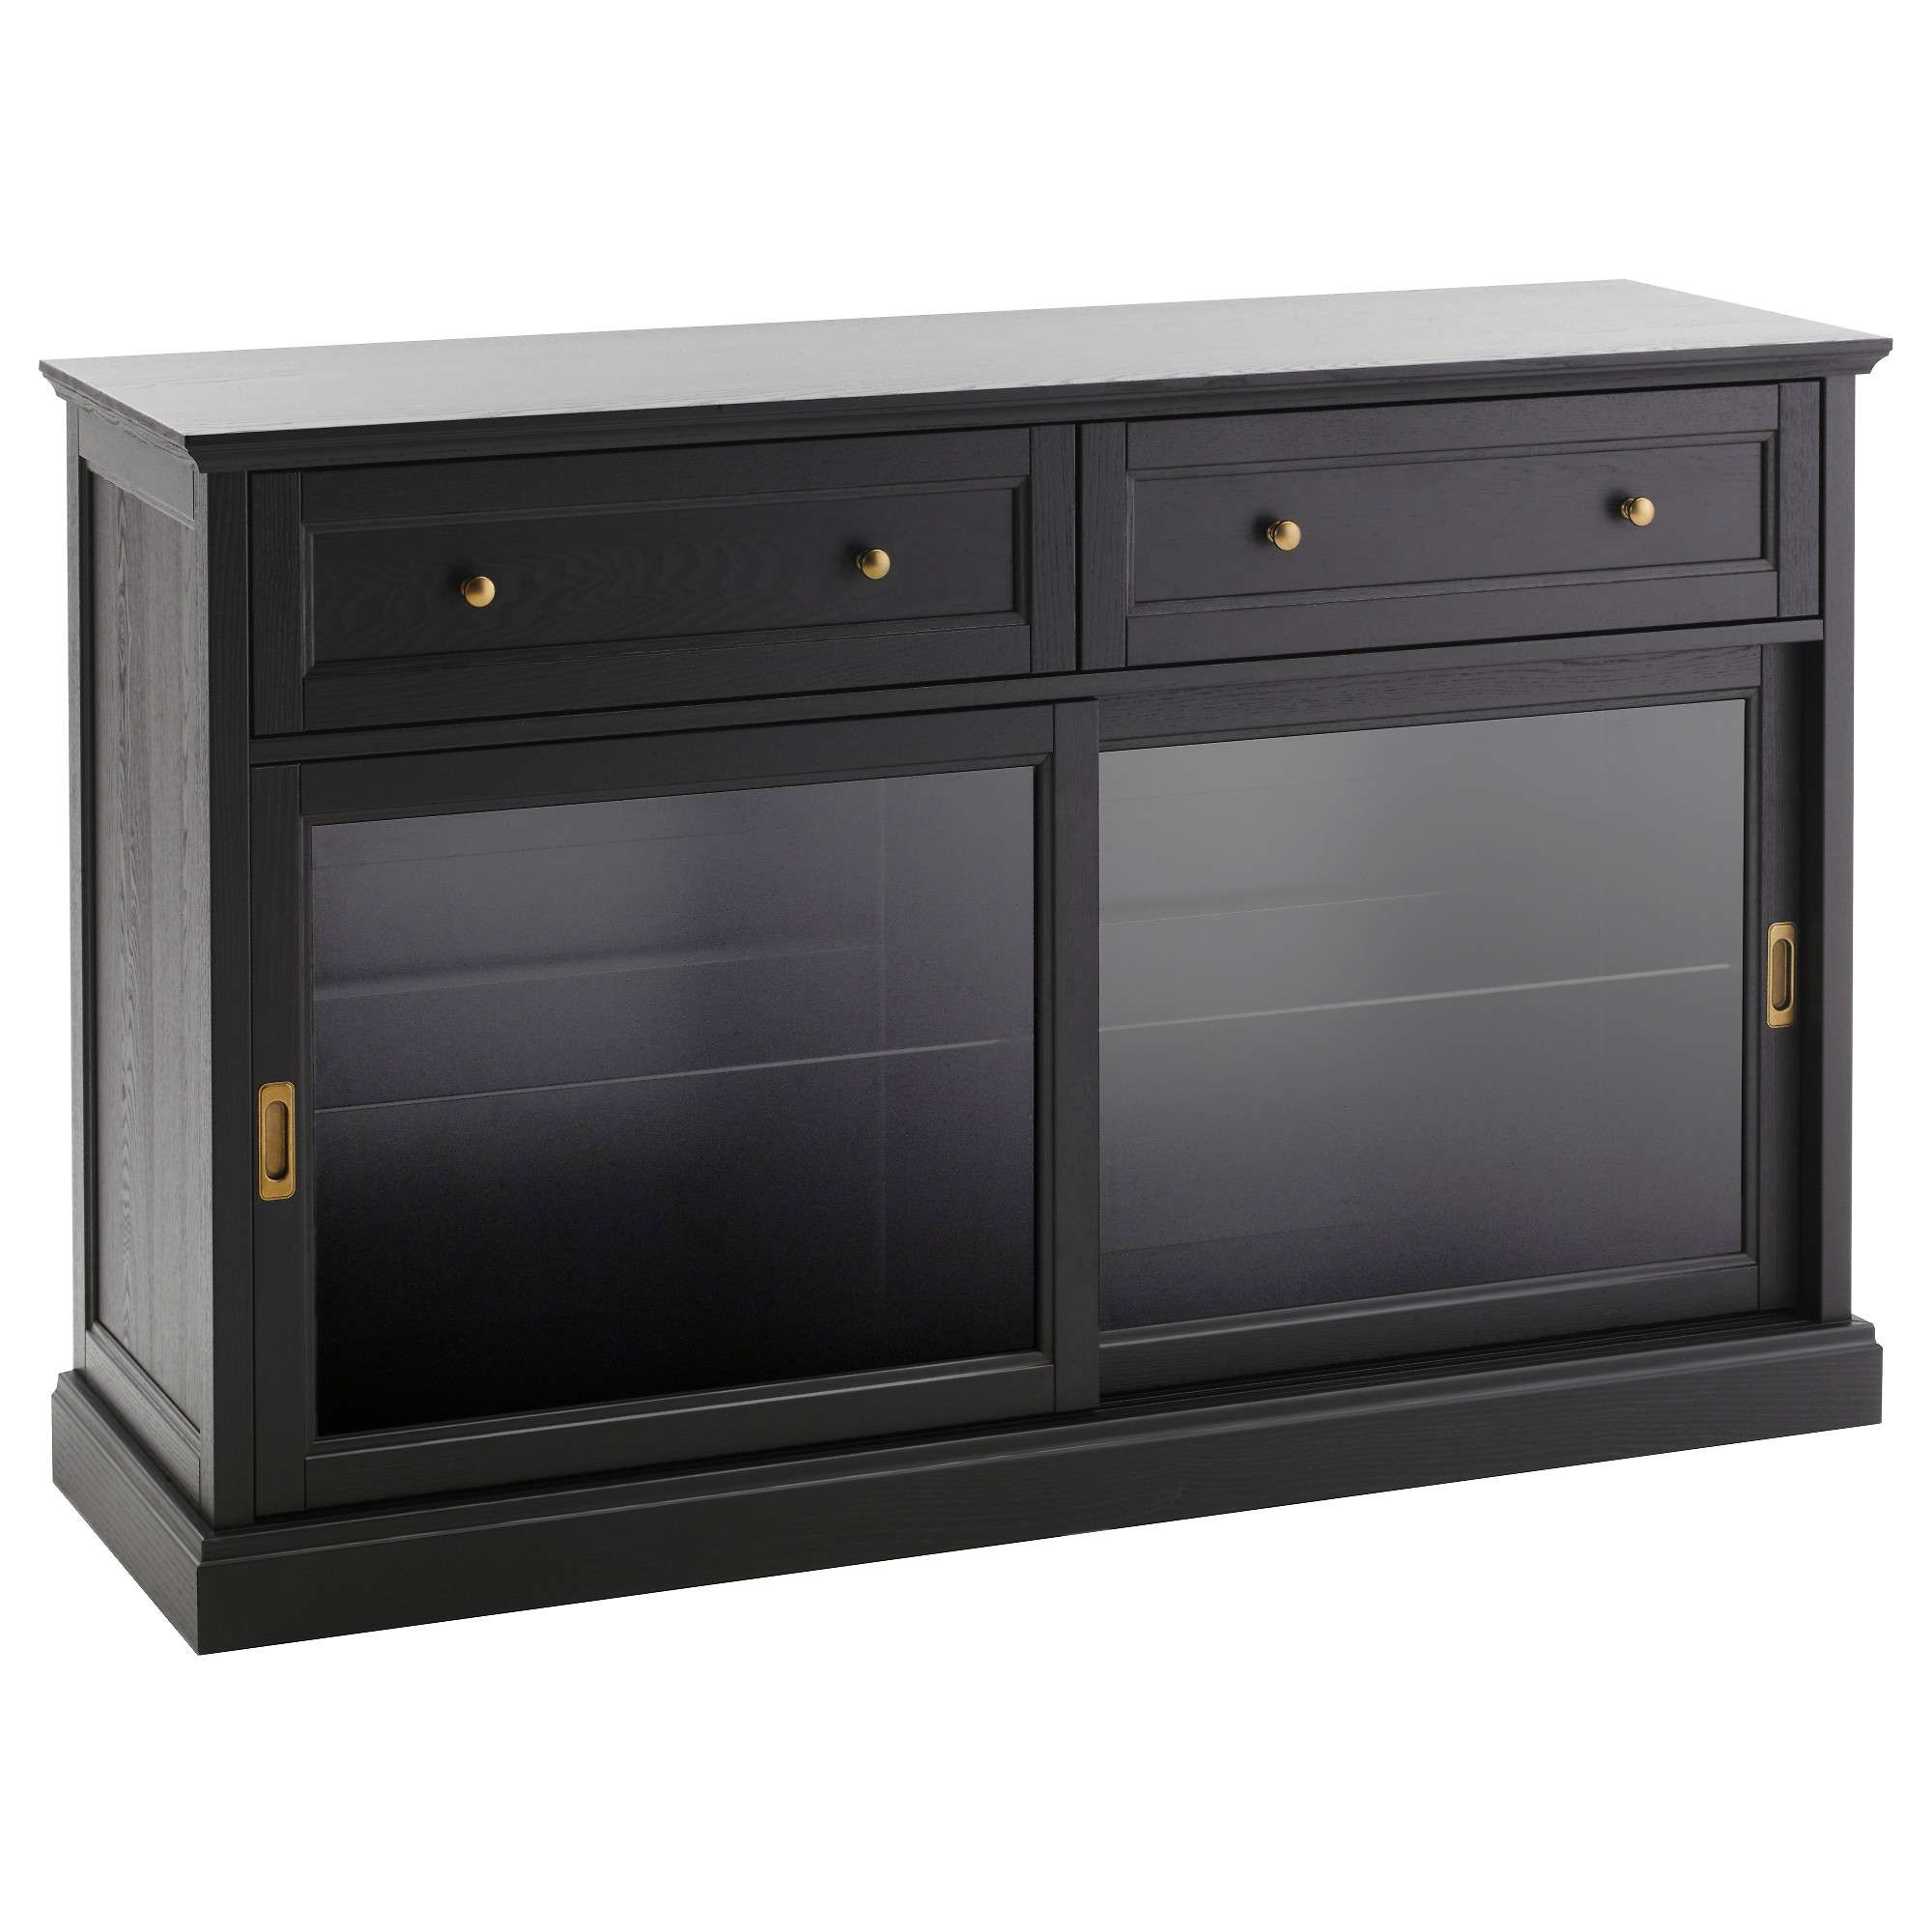 Buffet Tables & Sideboards – Ikea Within Country Sideboards And Hutches (View 14 of 20)